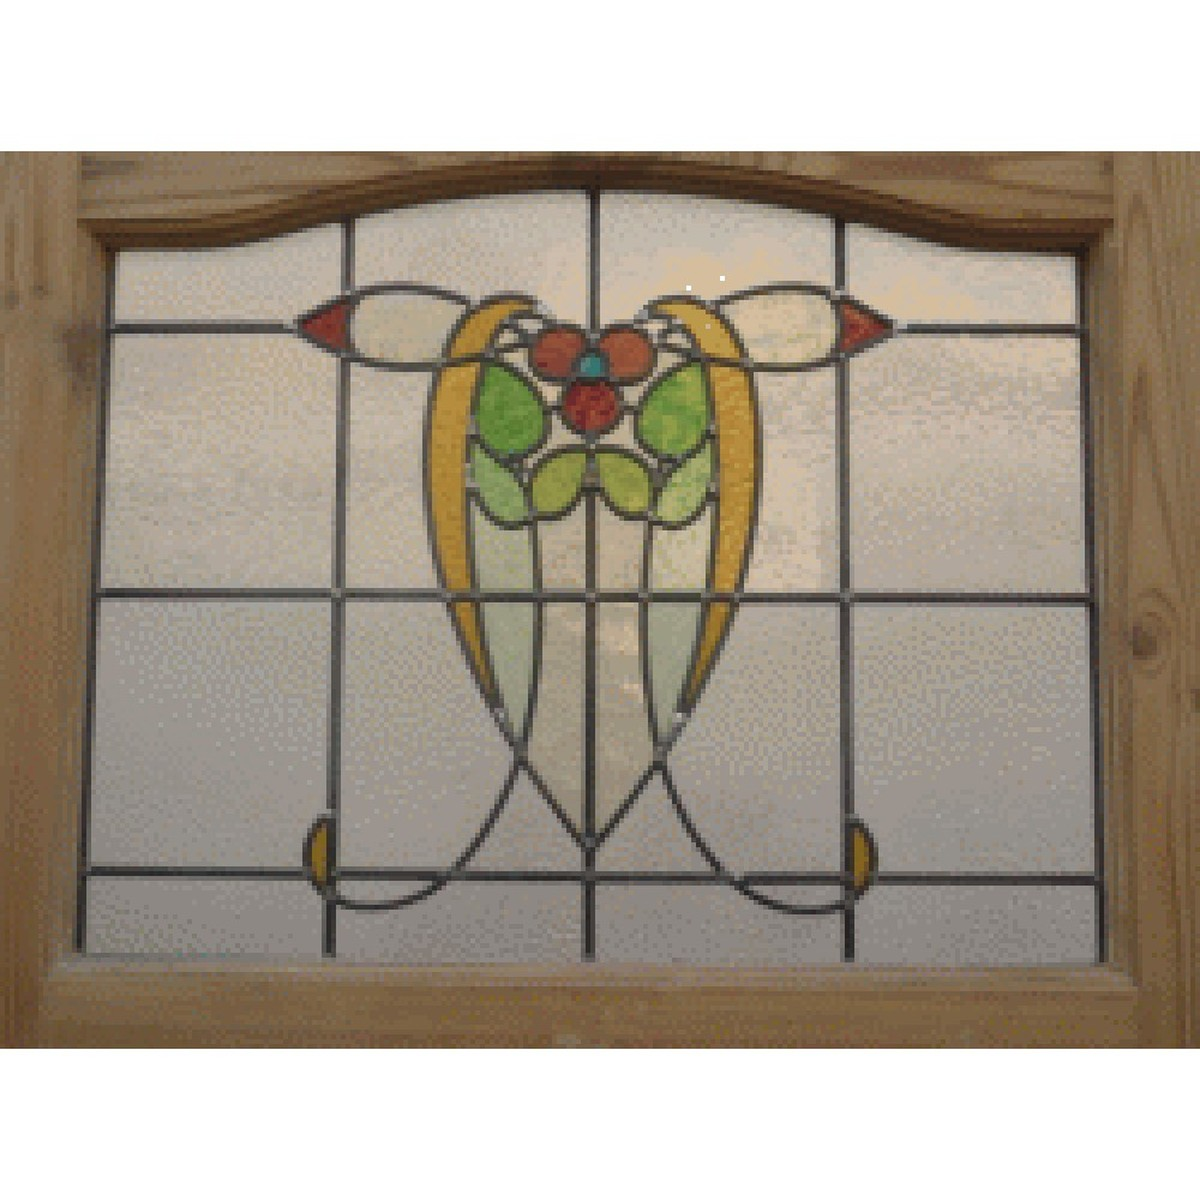 1200 #977634  Doors And Windows 1930 Edwardian Stained Glass Exterior Door wallpaper Stained Glass Front Doors 40151200